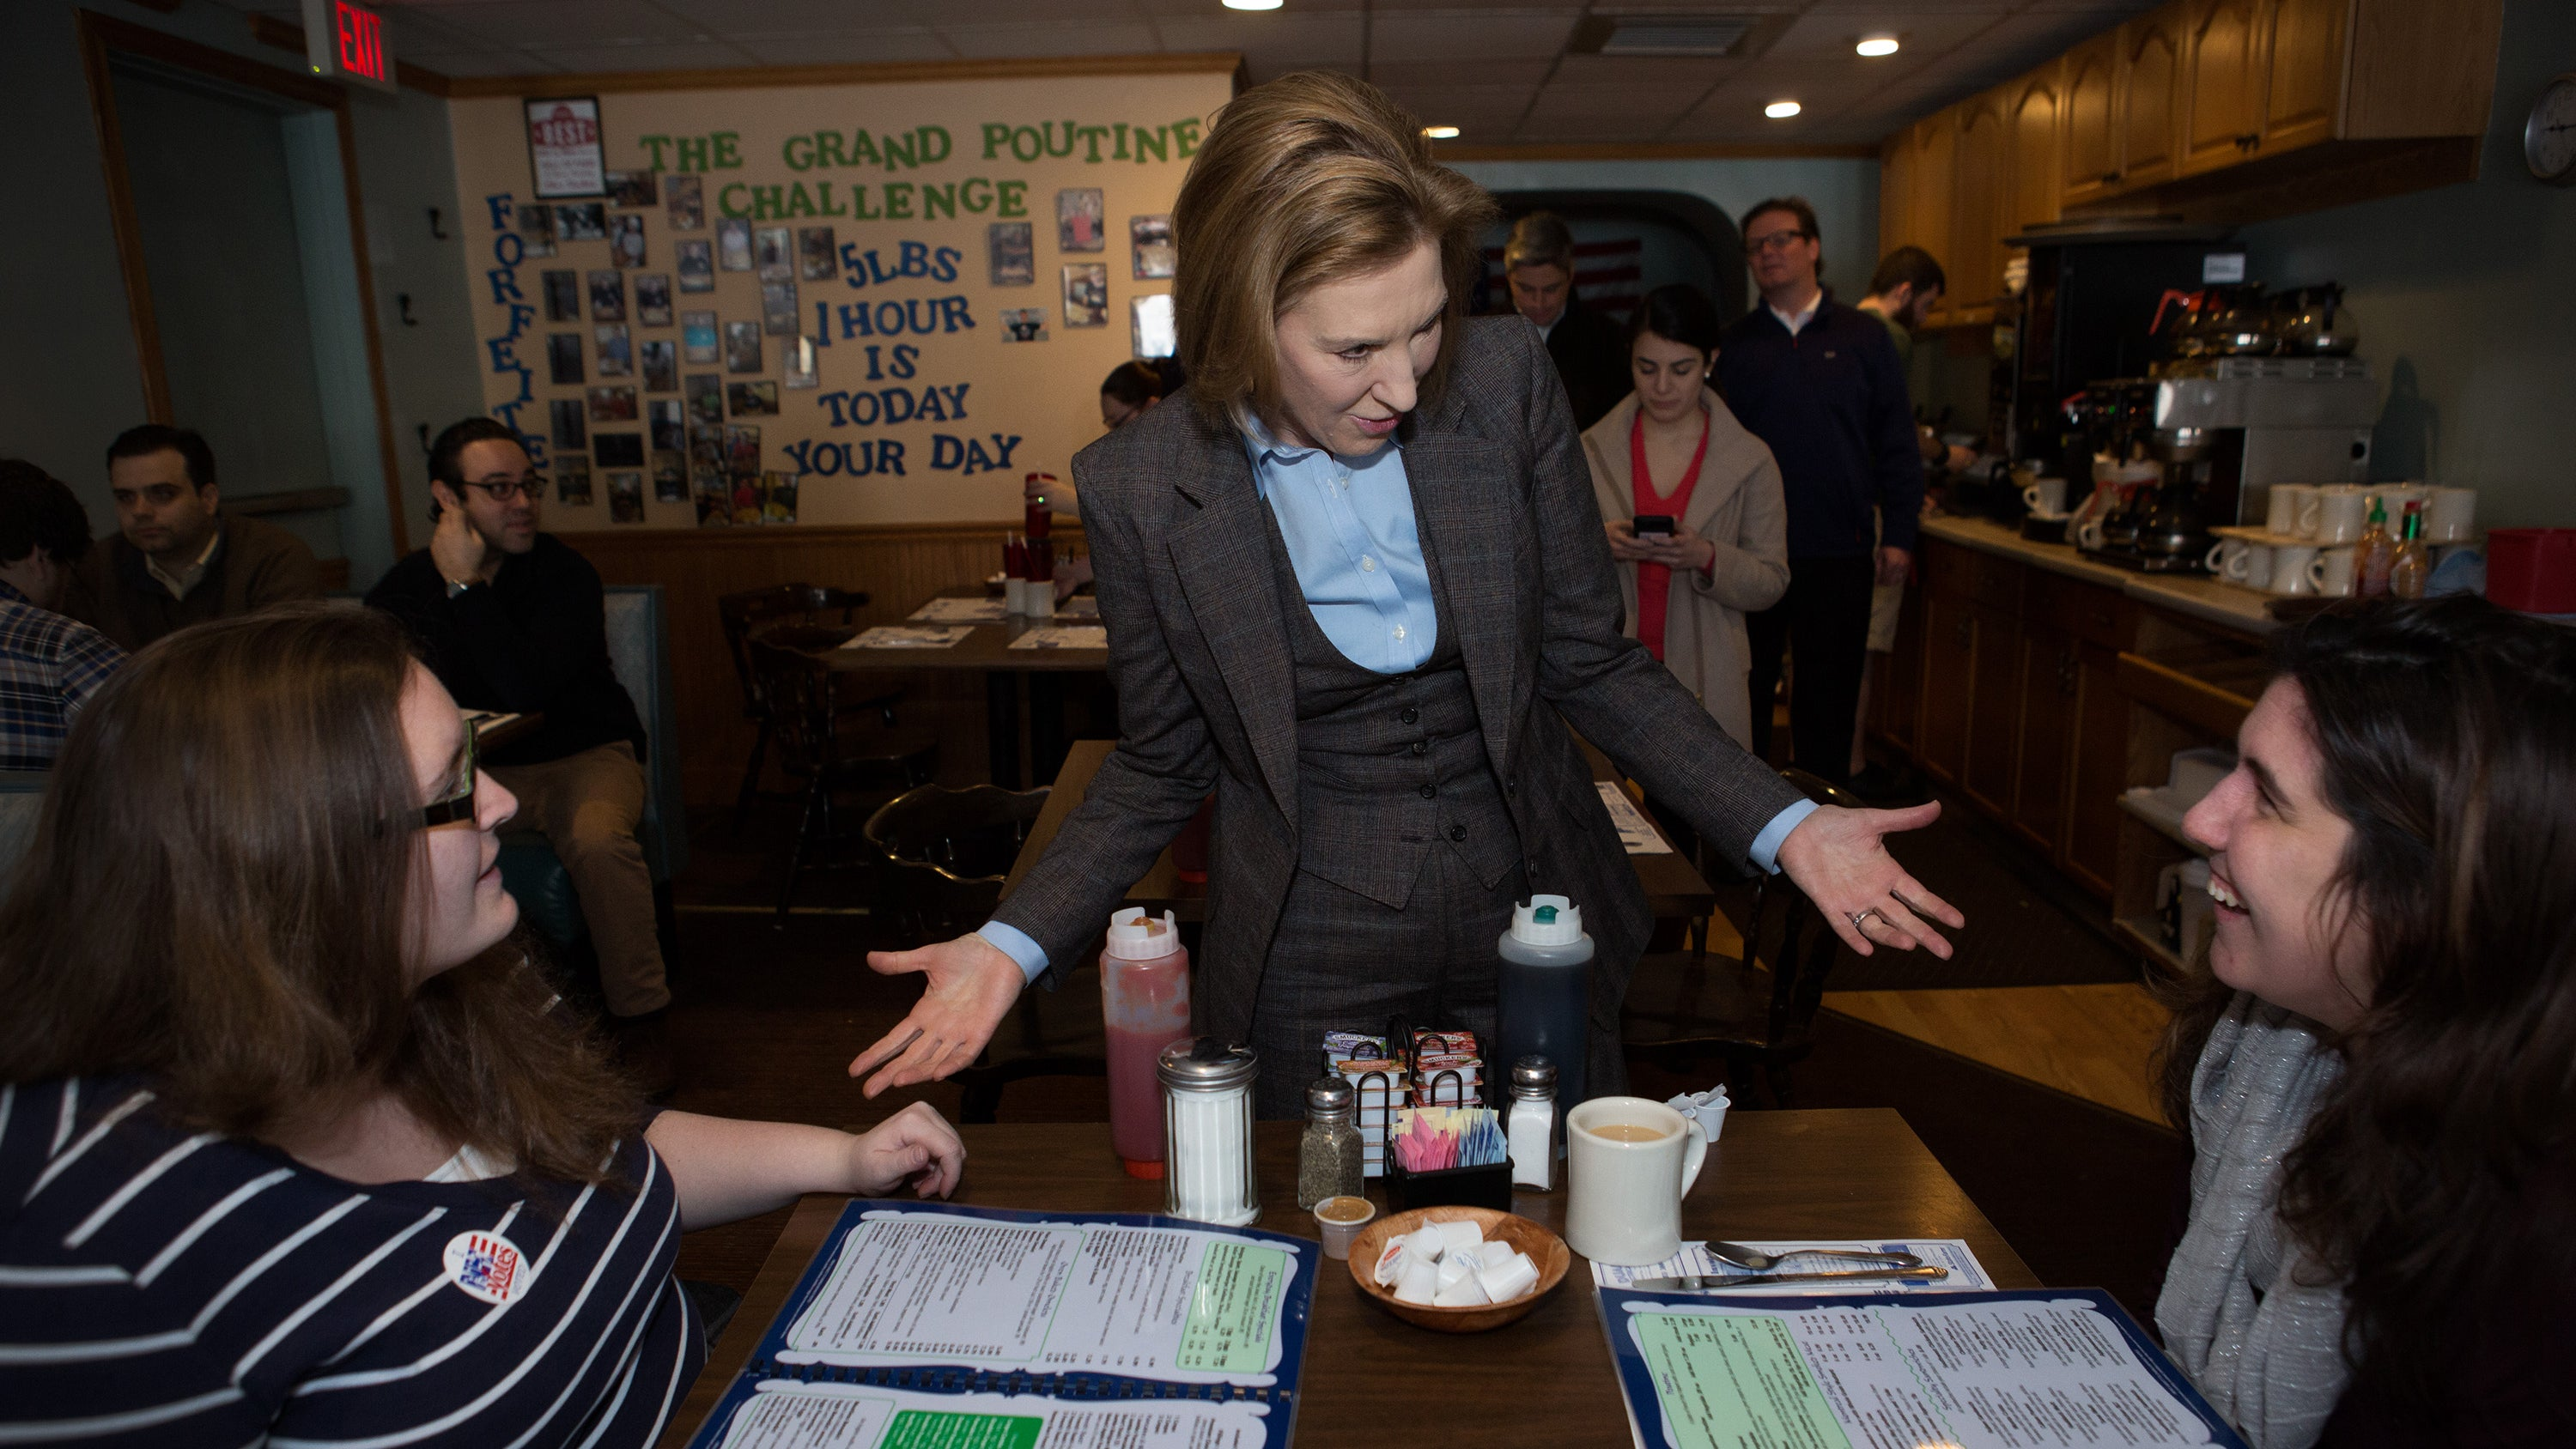 Republican presidential candidate Carly Fiorina campaigns at Chez Vachon in Manchester, New Hampshire.